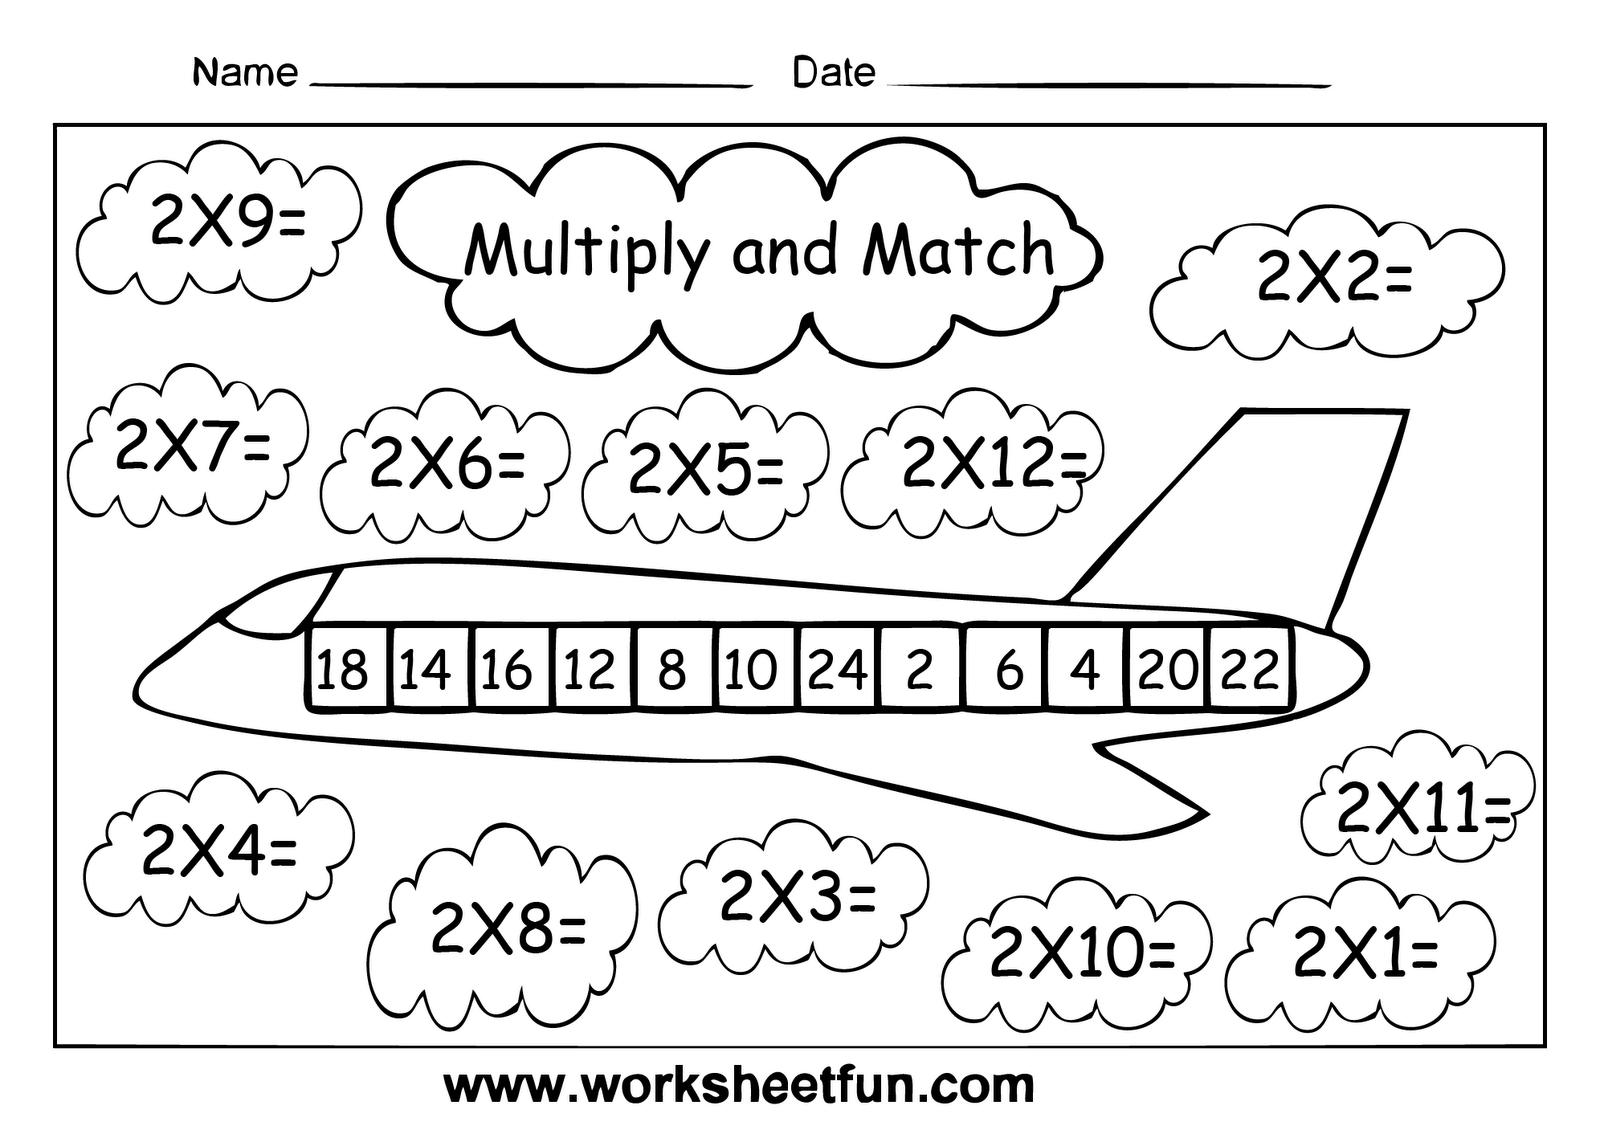 Multiplication Worksheets By 2 1